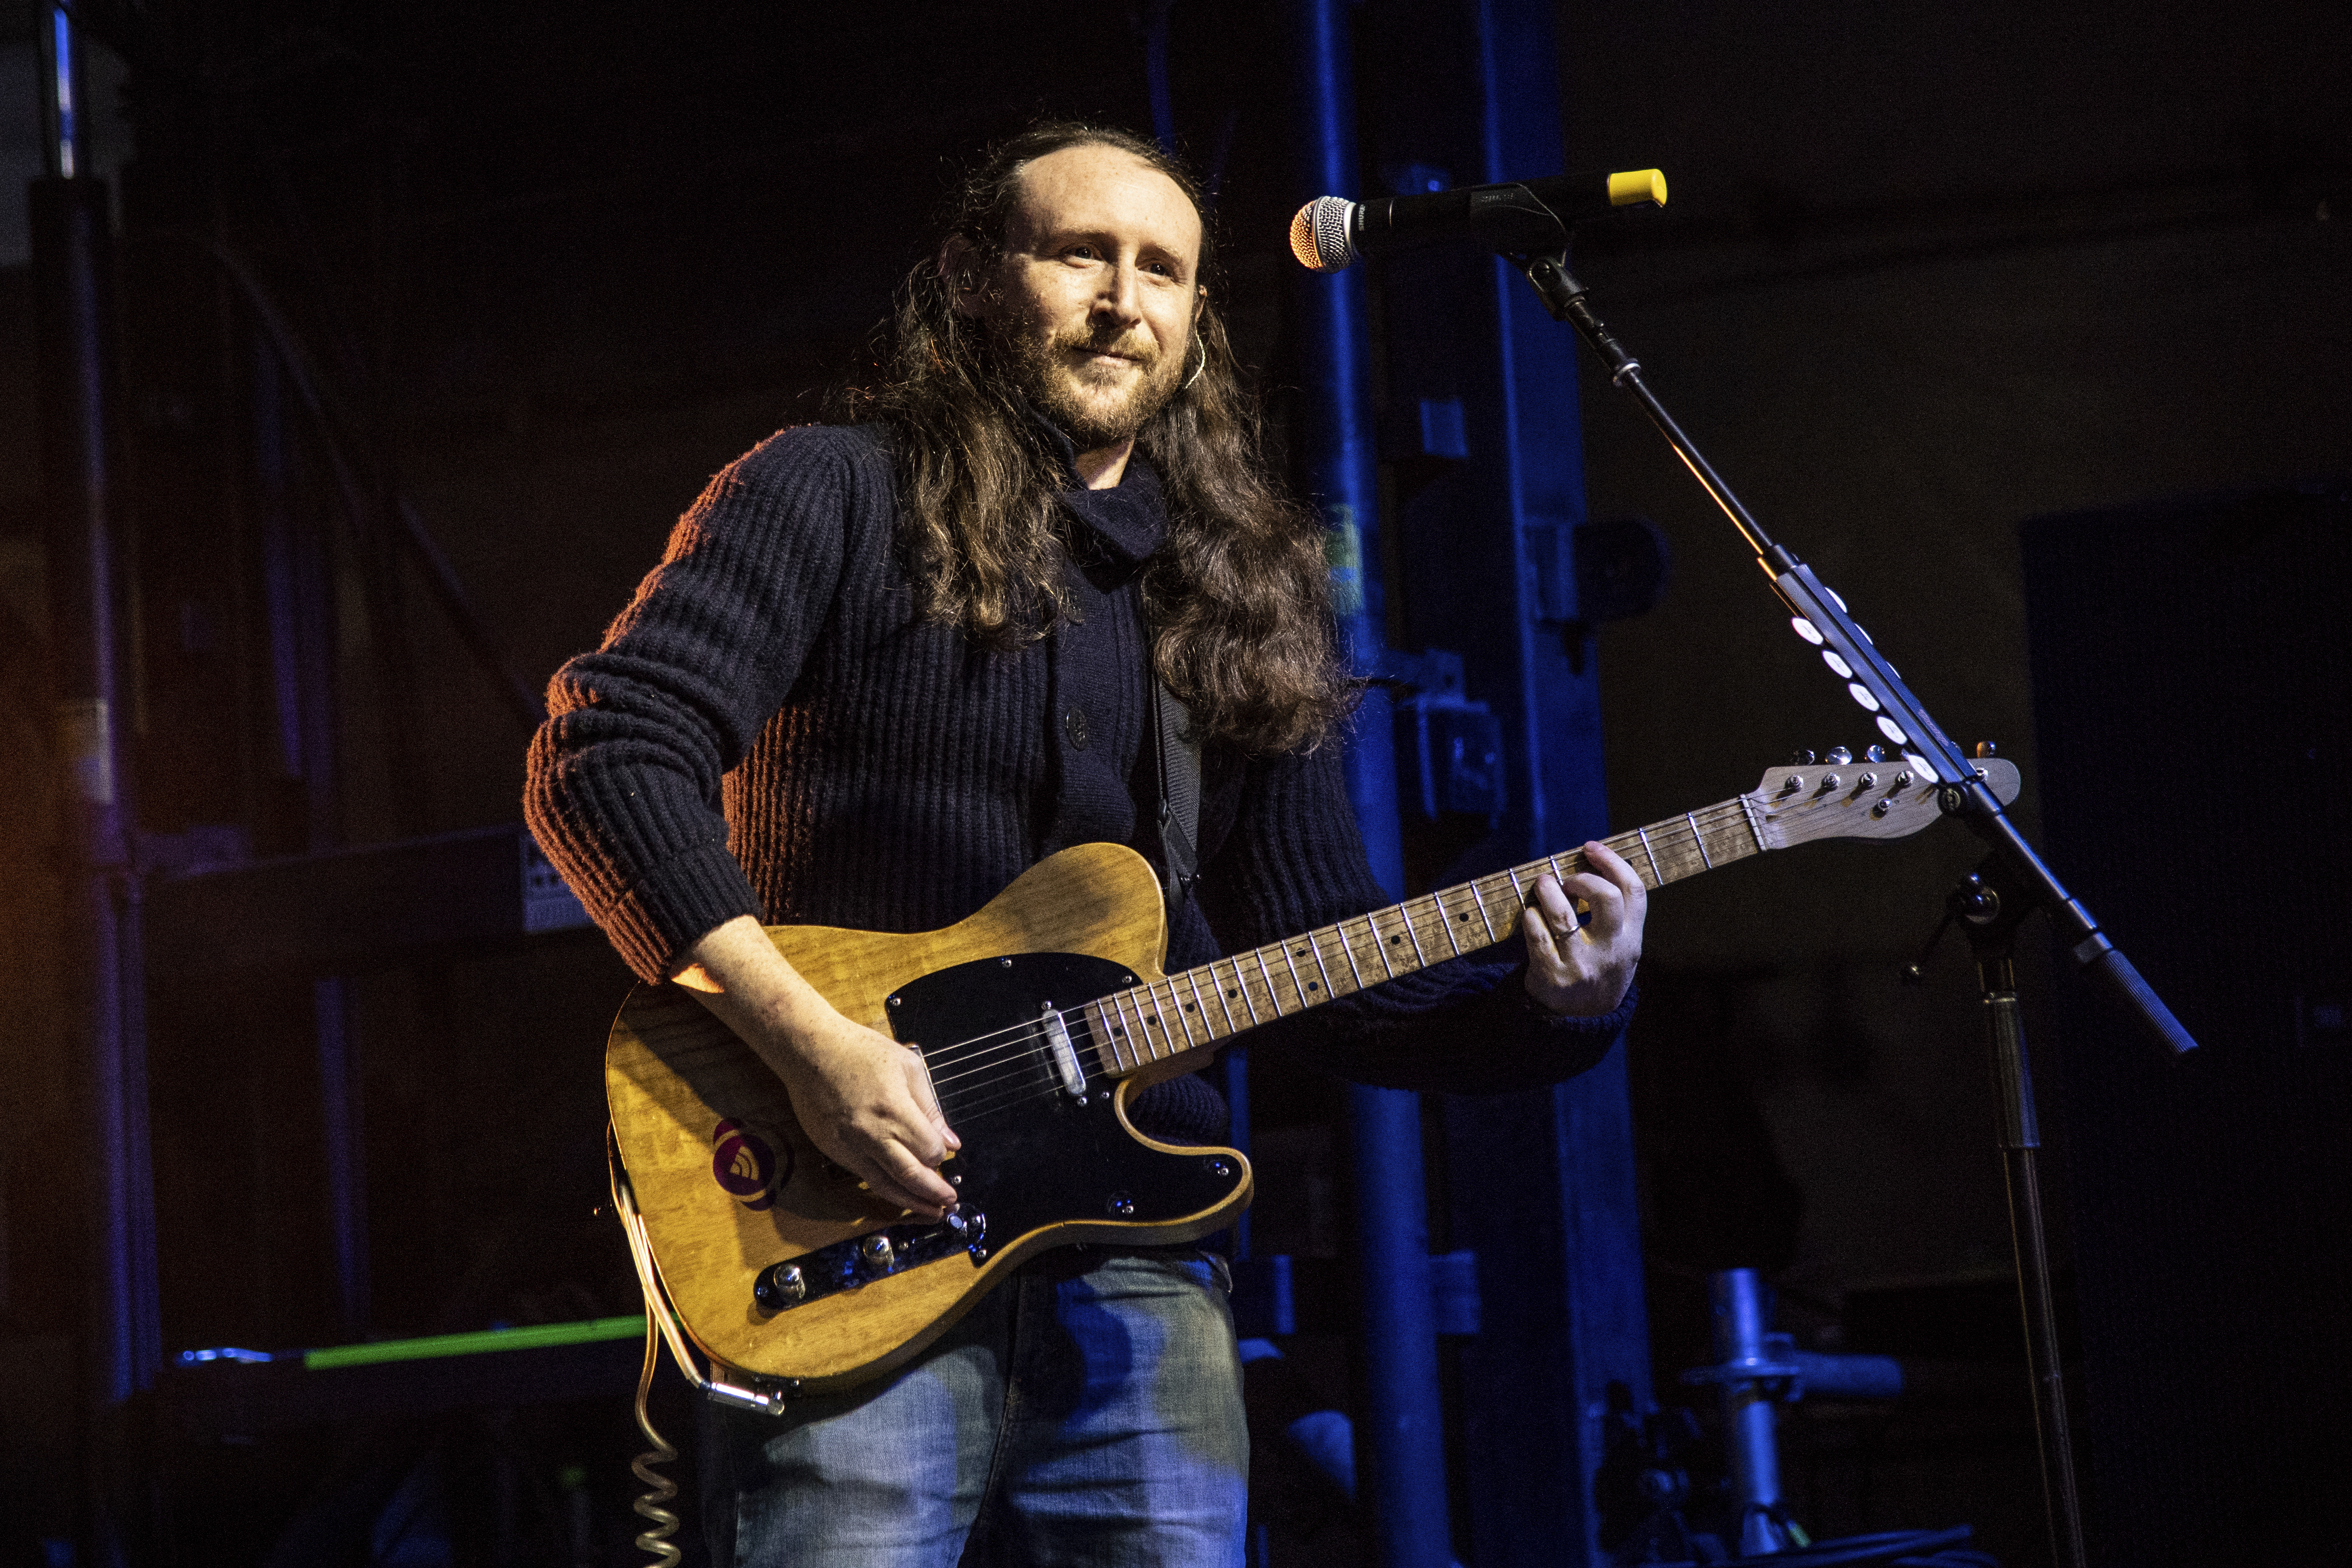 Incubus and Mixhalo founder Mike Einziger playing guitar